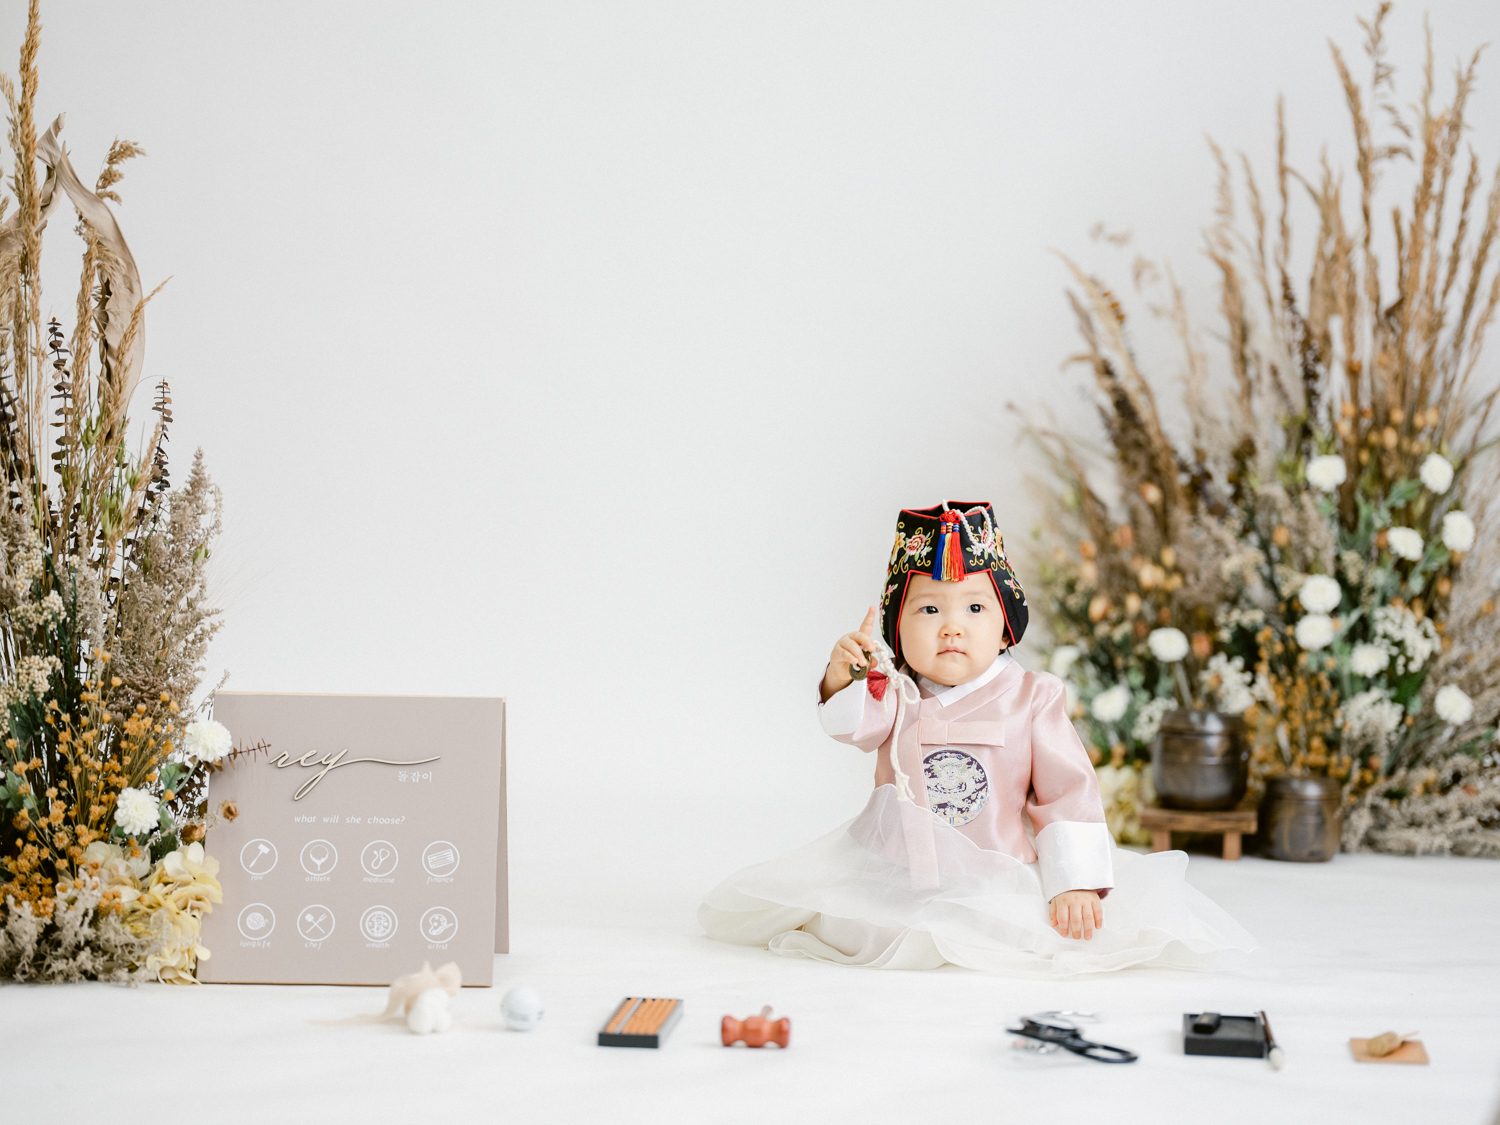 How to Celebrate Dol - Korean First Birthday Traditions